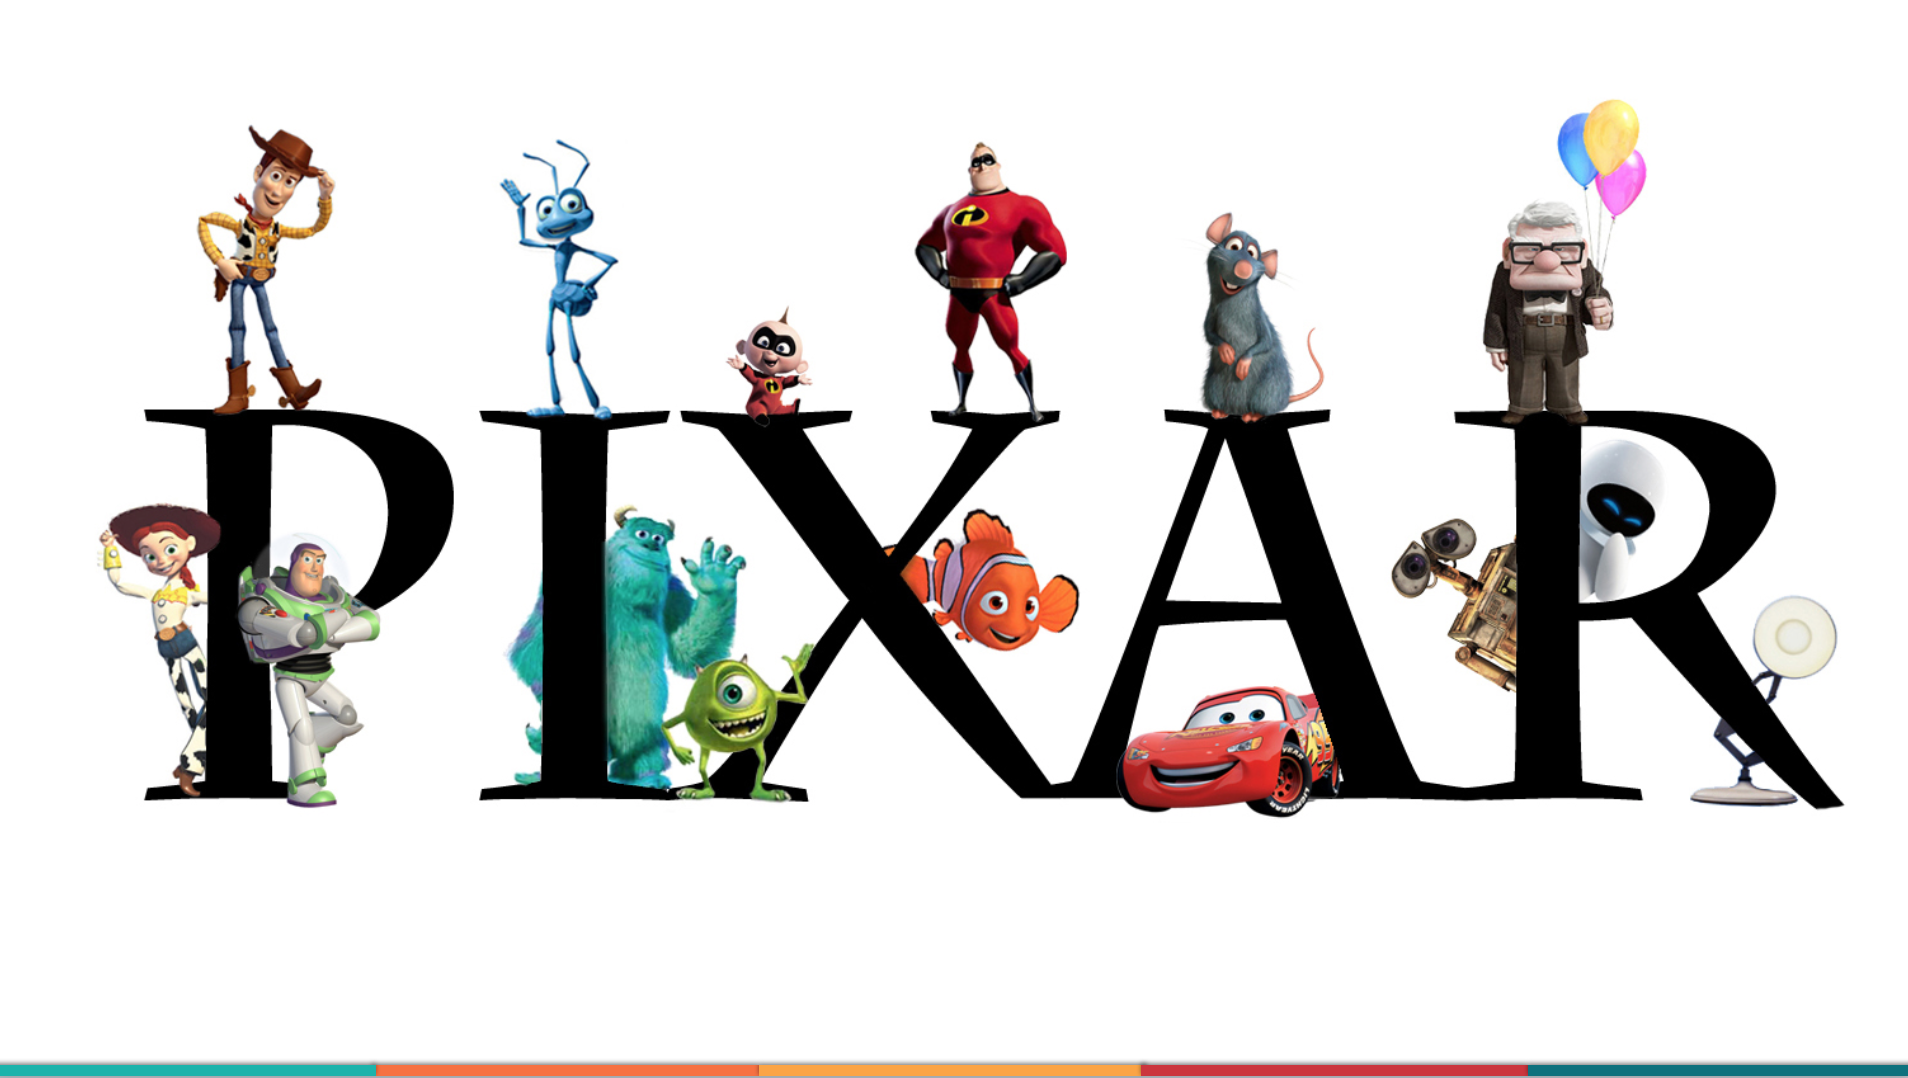 the walt disney company and pixar inc to acquire of not to acquire This case is about the walt disney company and pixar inc: to acquire or not to acquire get your the walt disney company and pixar inc.